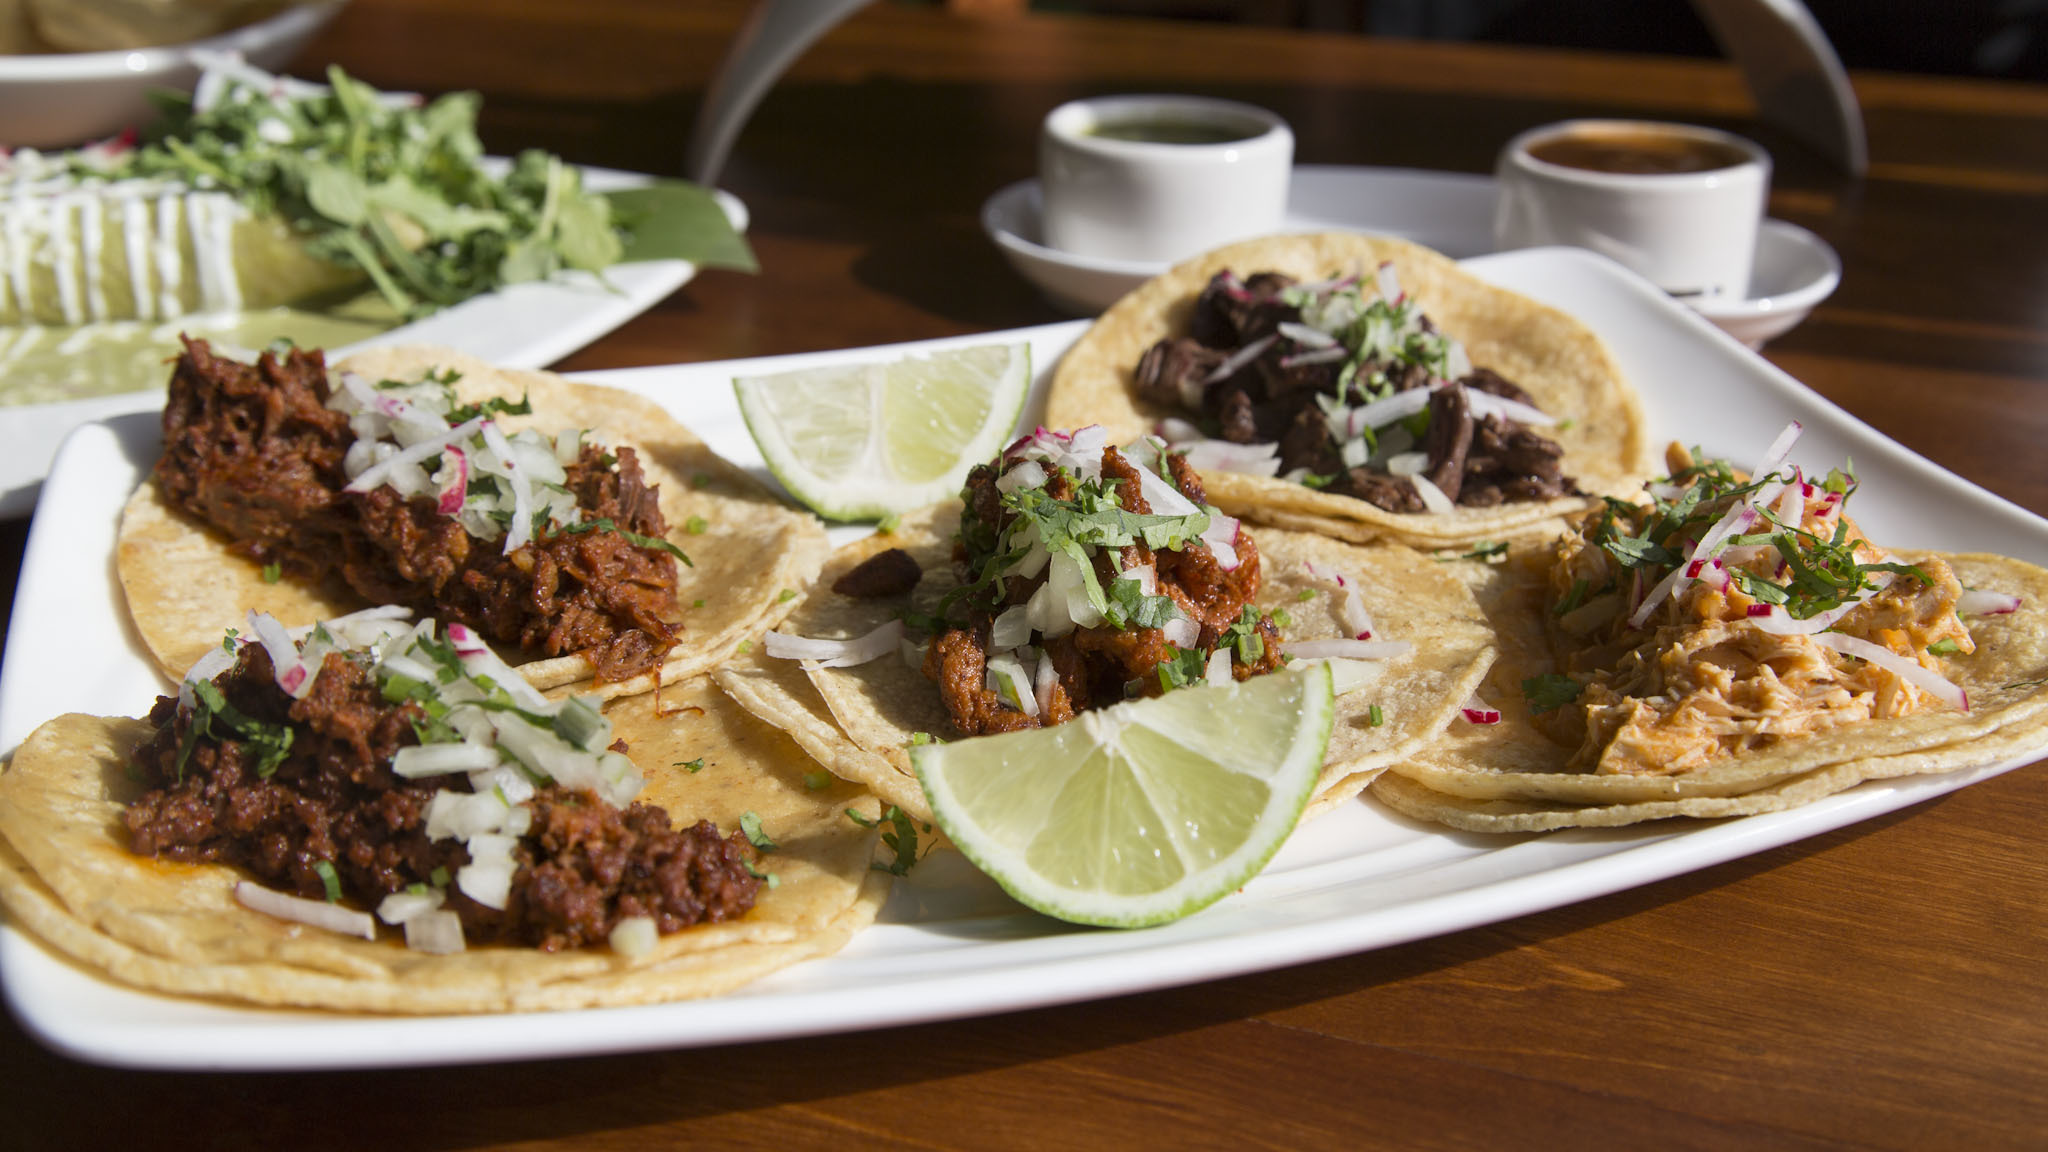 The best Chicago BYOB restaurants for Mexican food